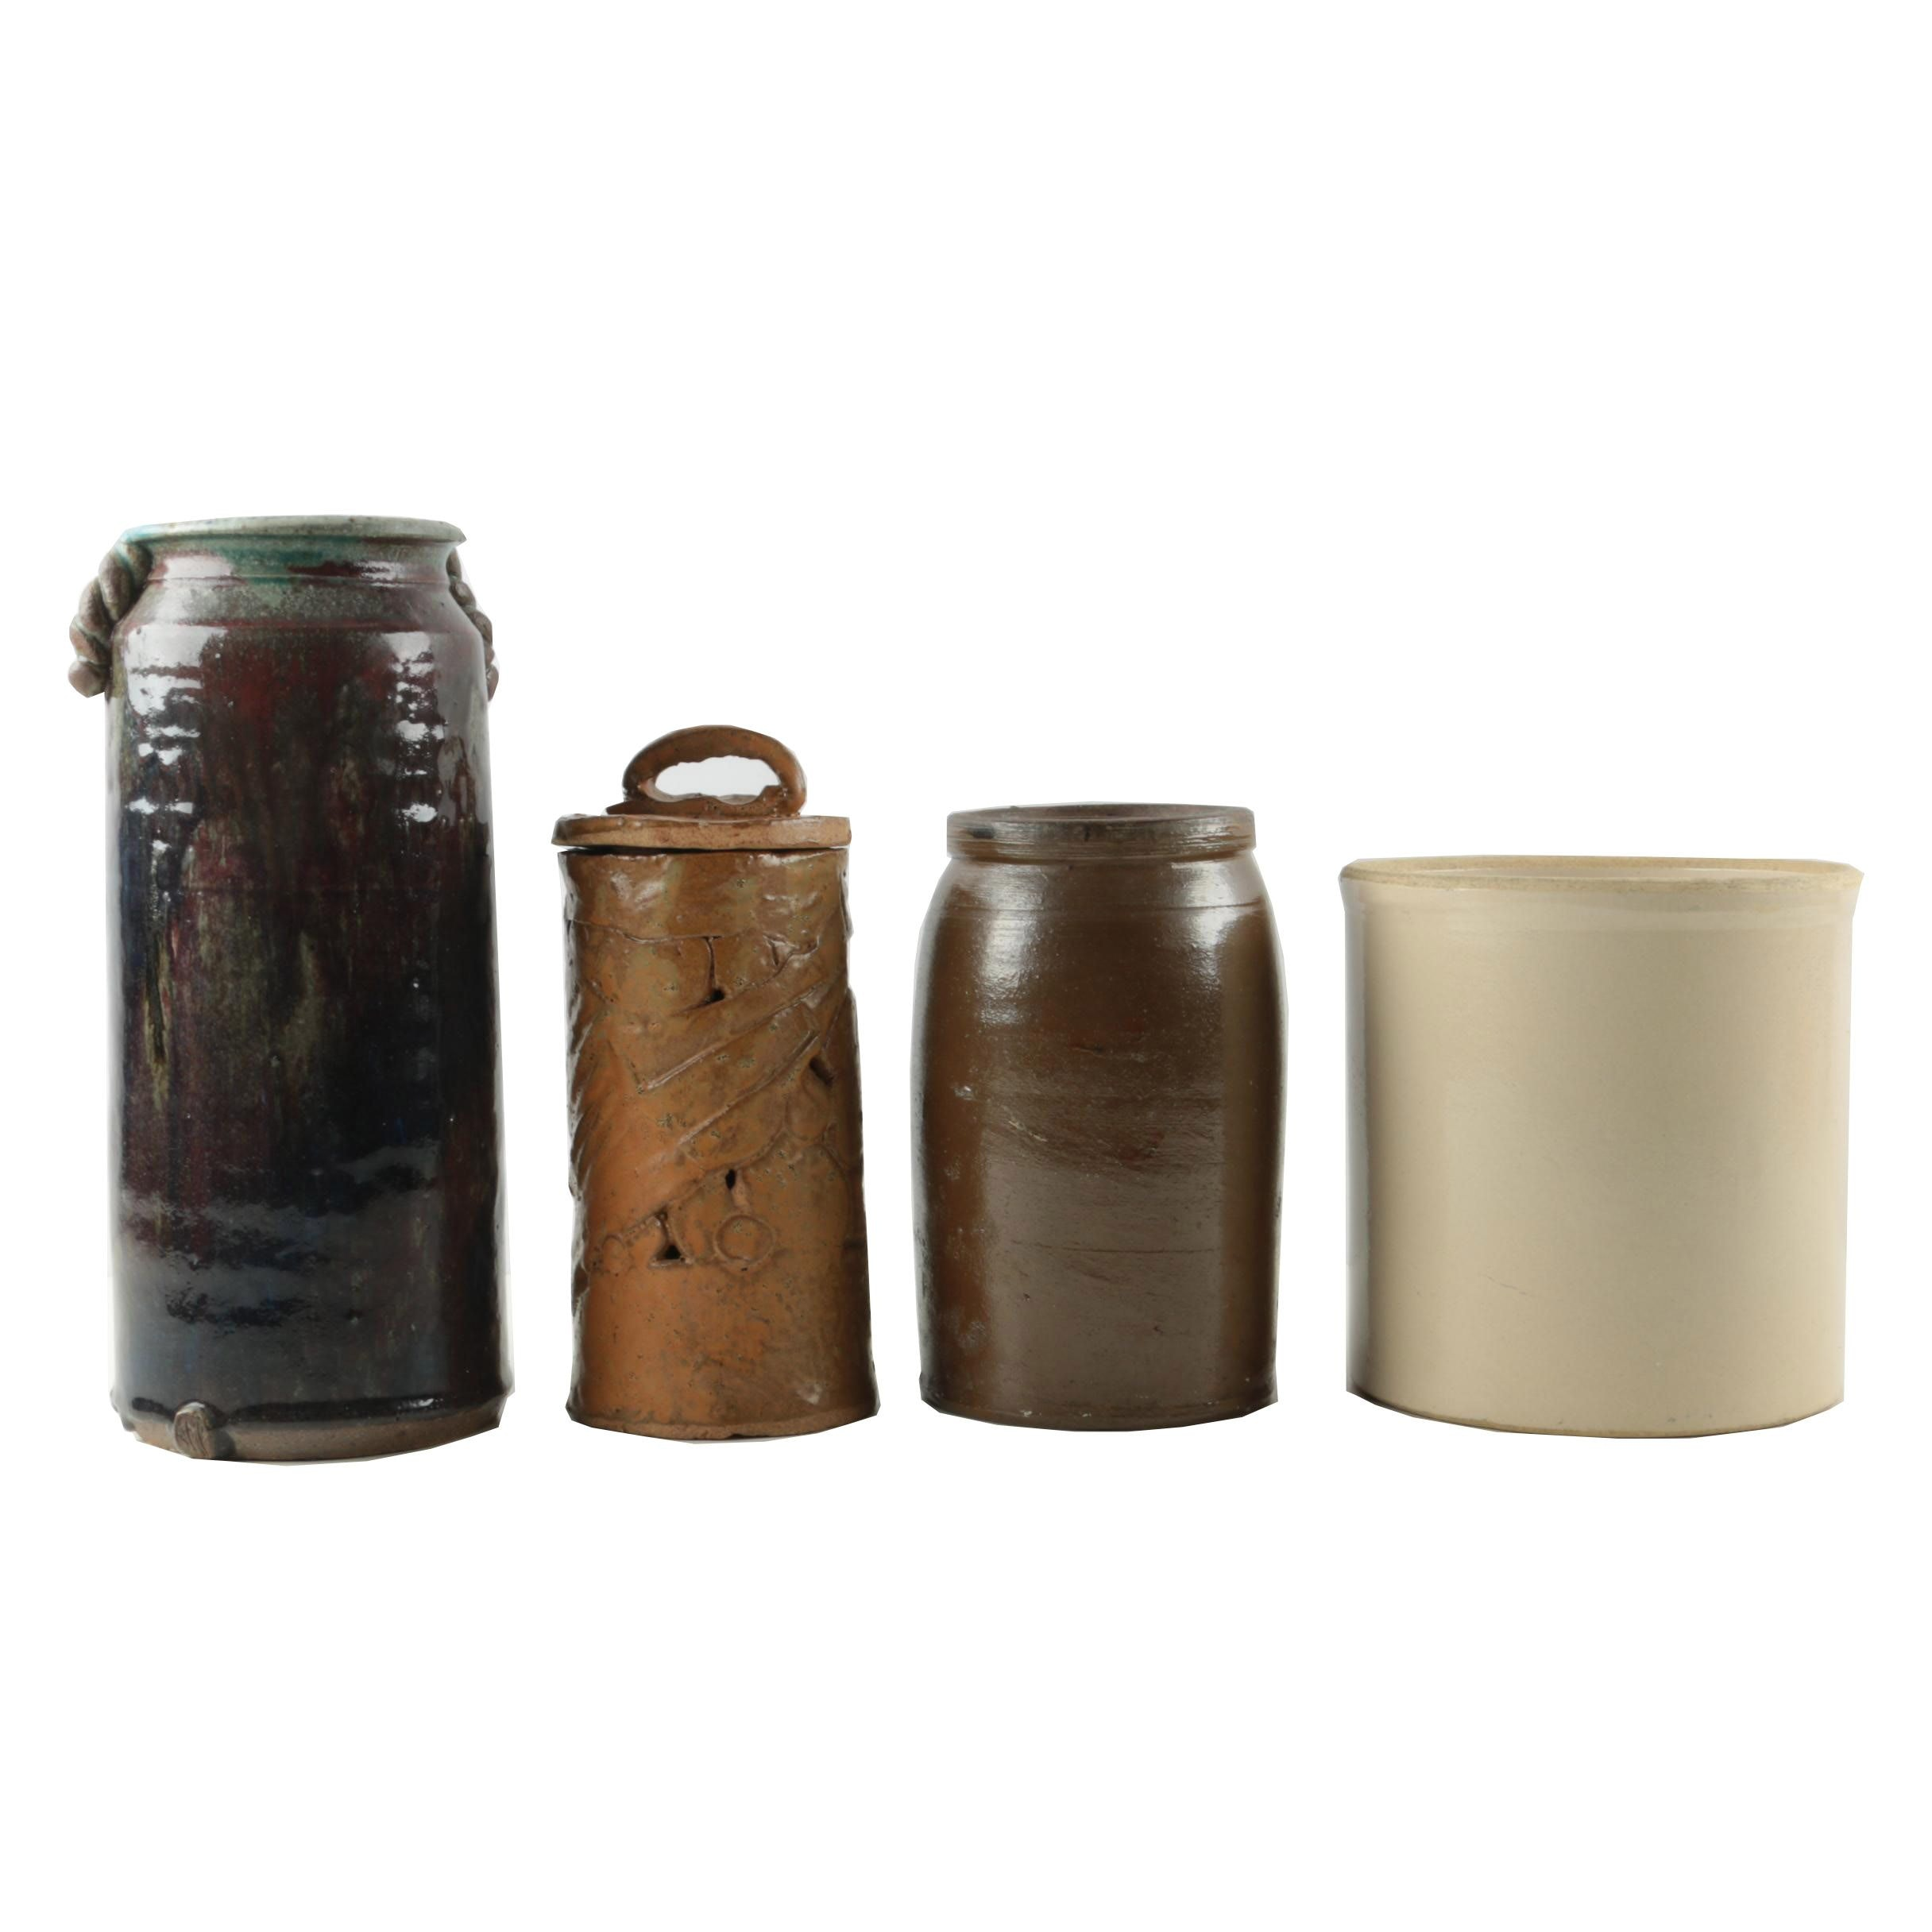 Hand Thrown Stoneware Crocks and Vessels